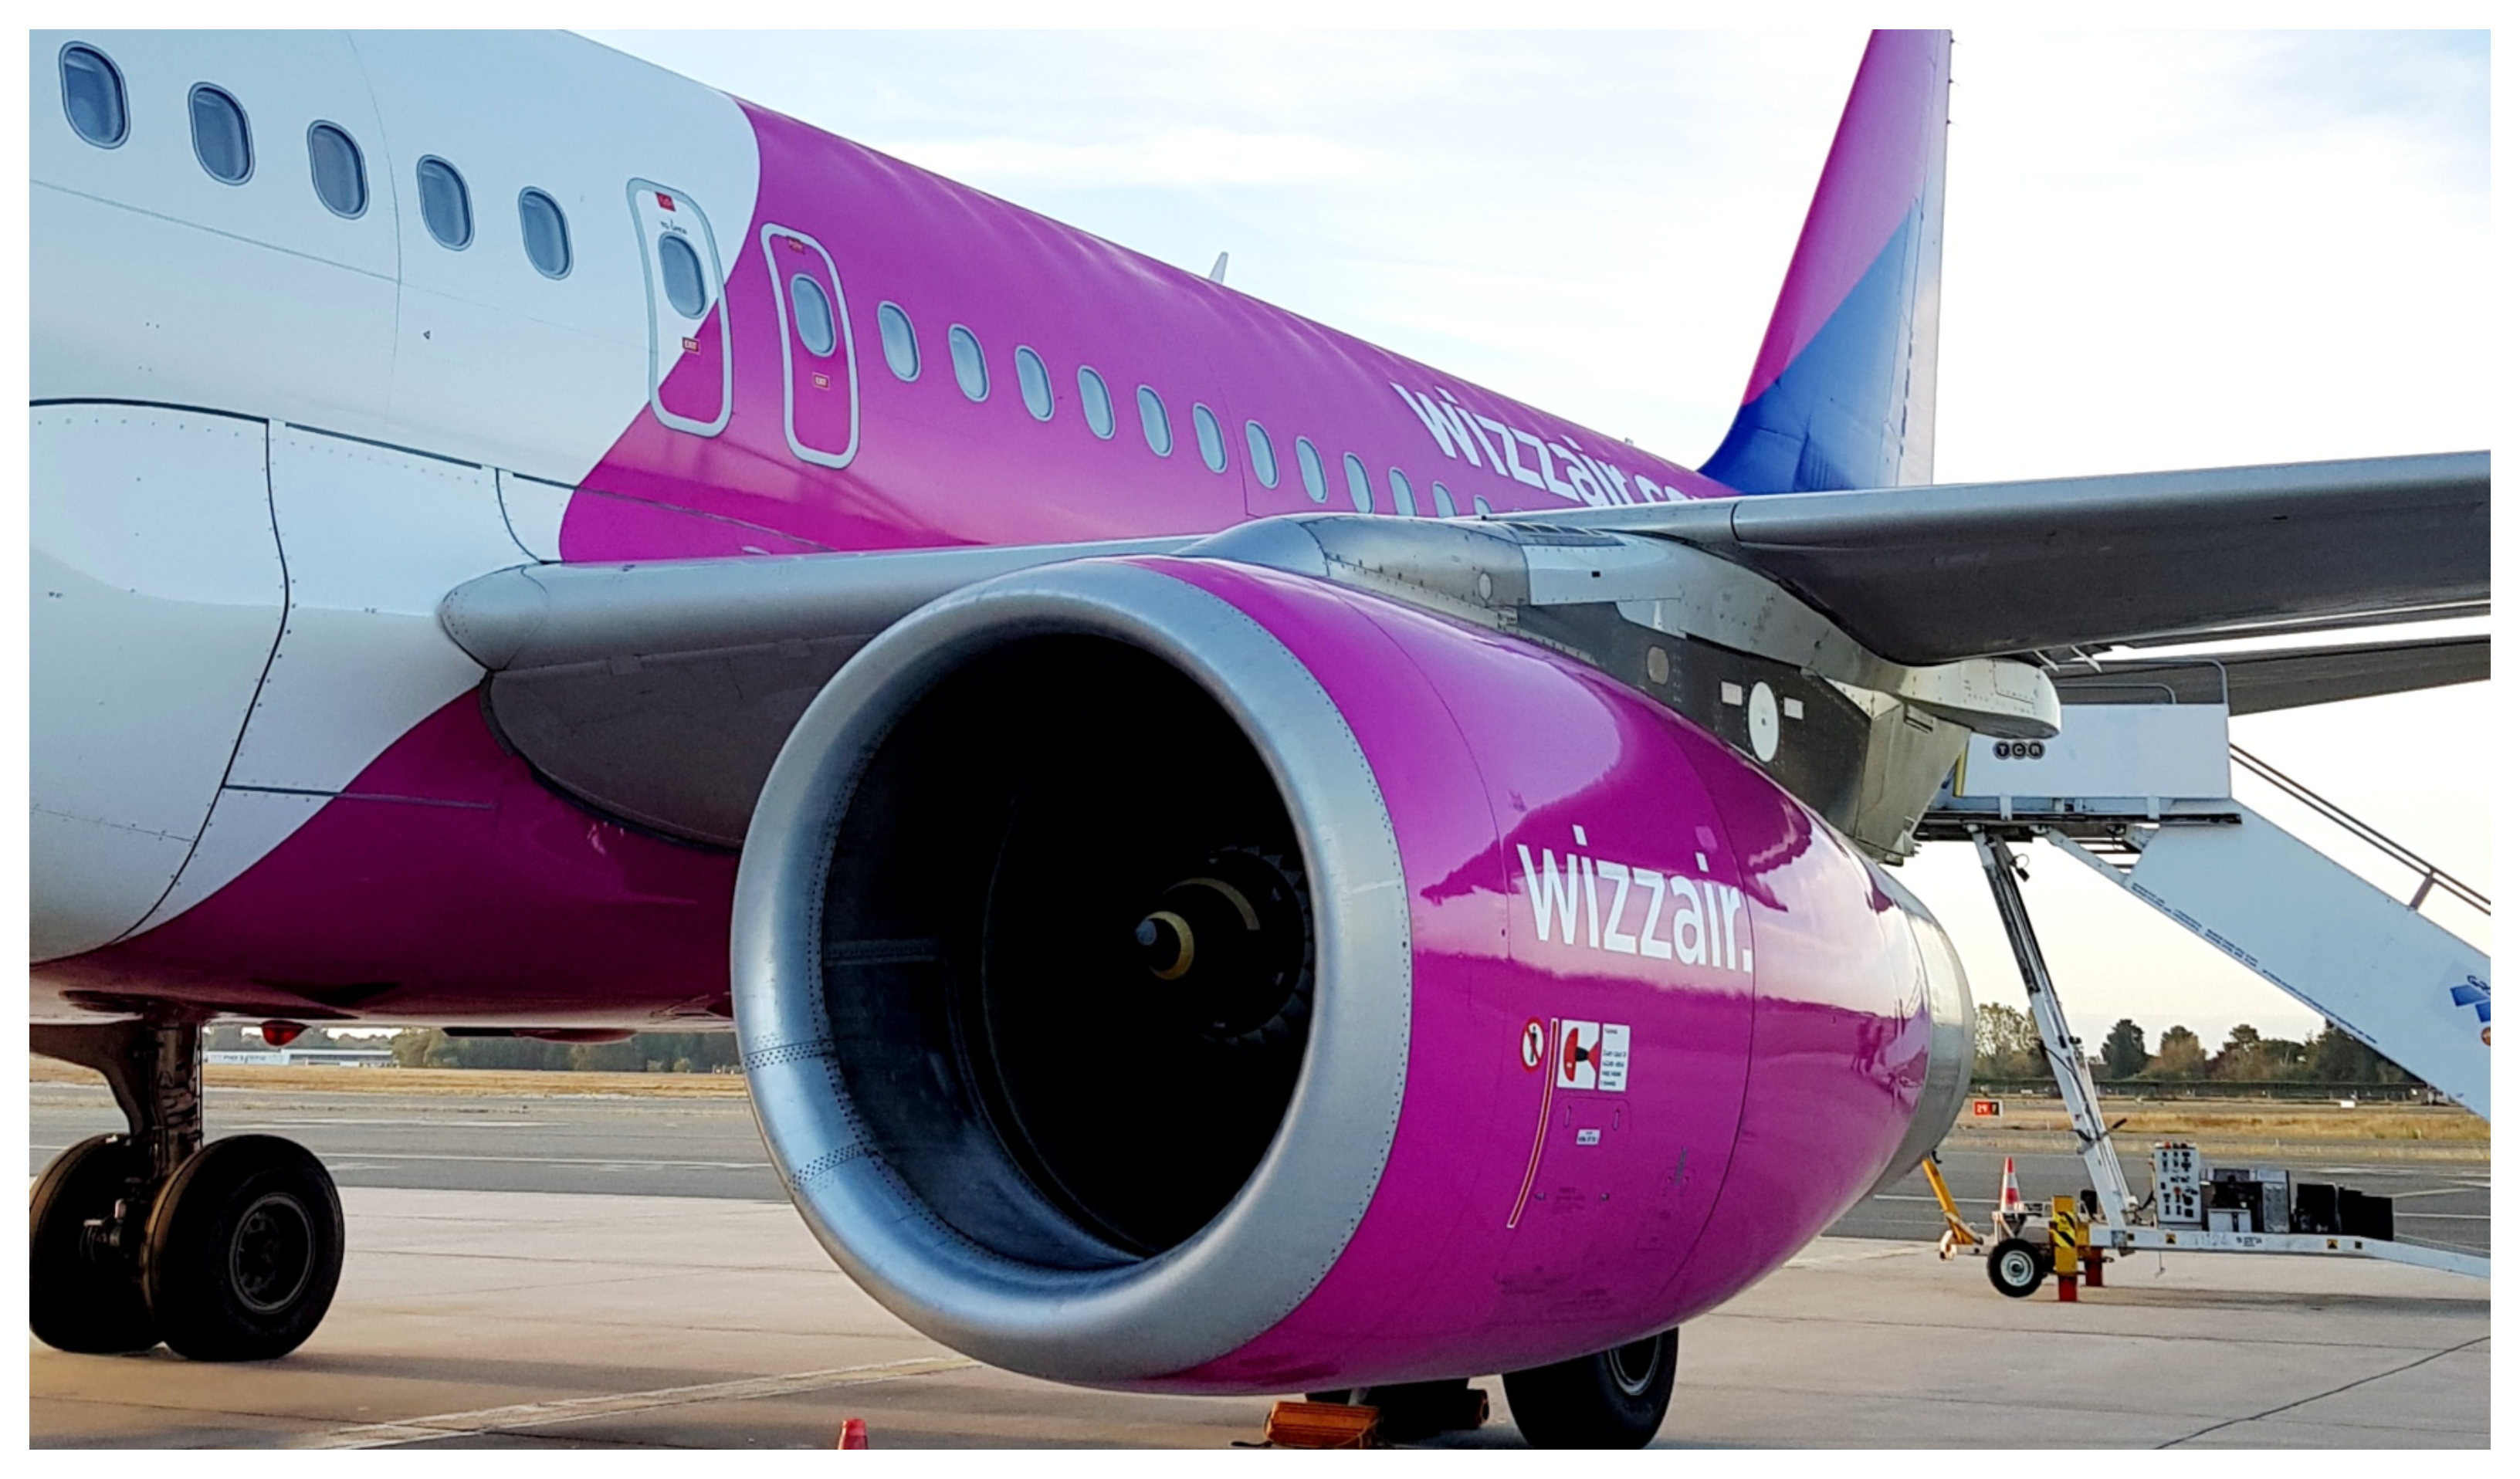 vol-budapest-bordeaux-direct-wizz-air